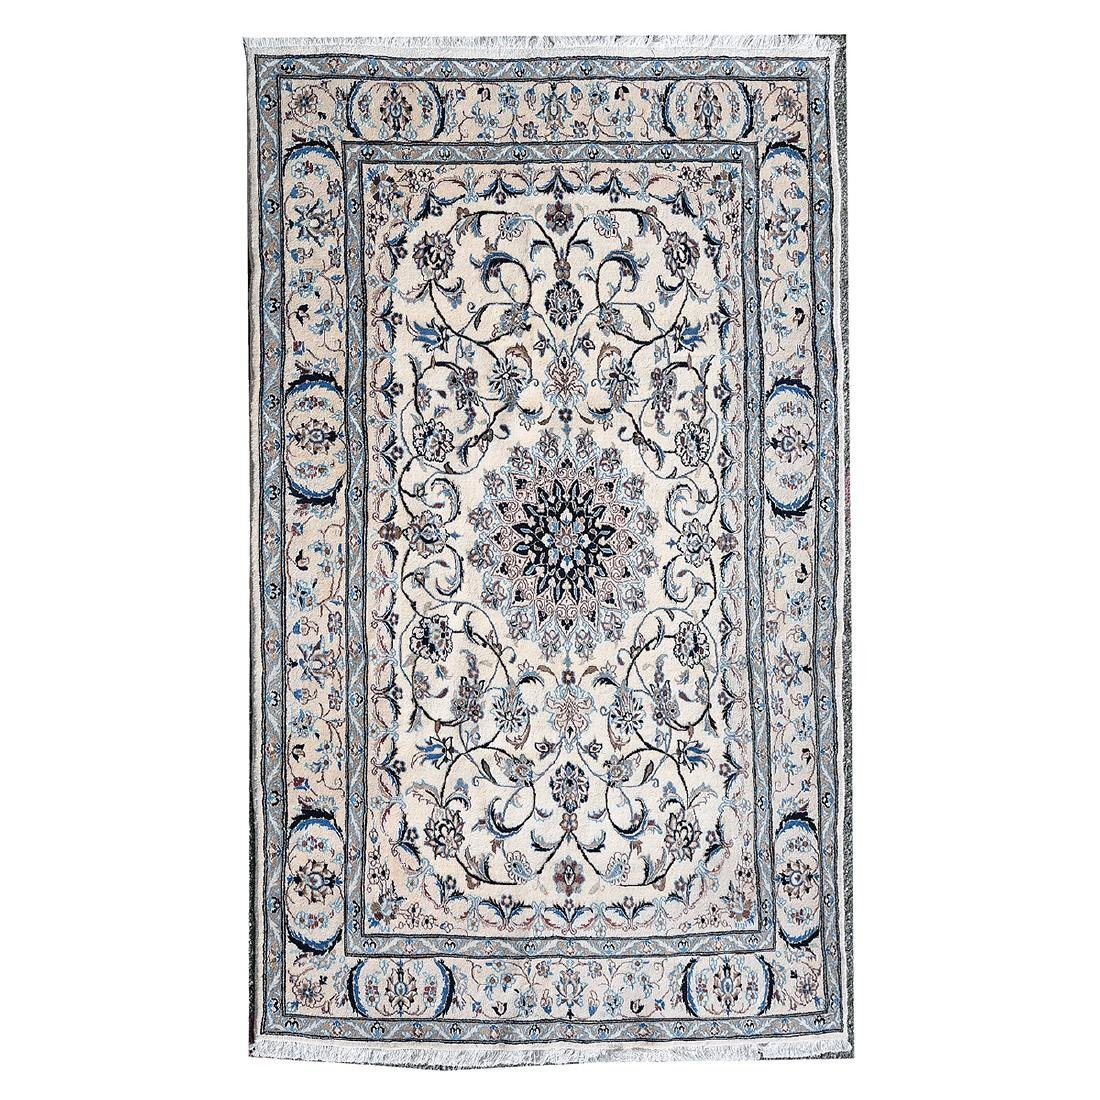 Nain Carpet (Ivory ground with central medallion).